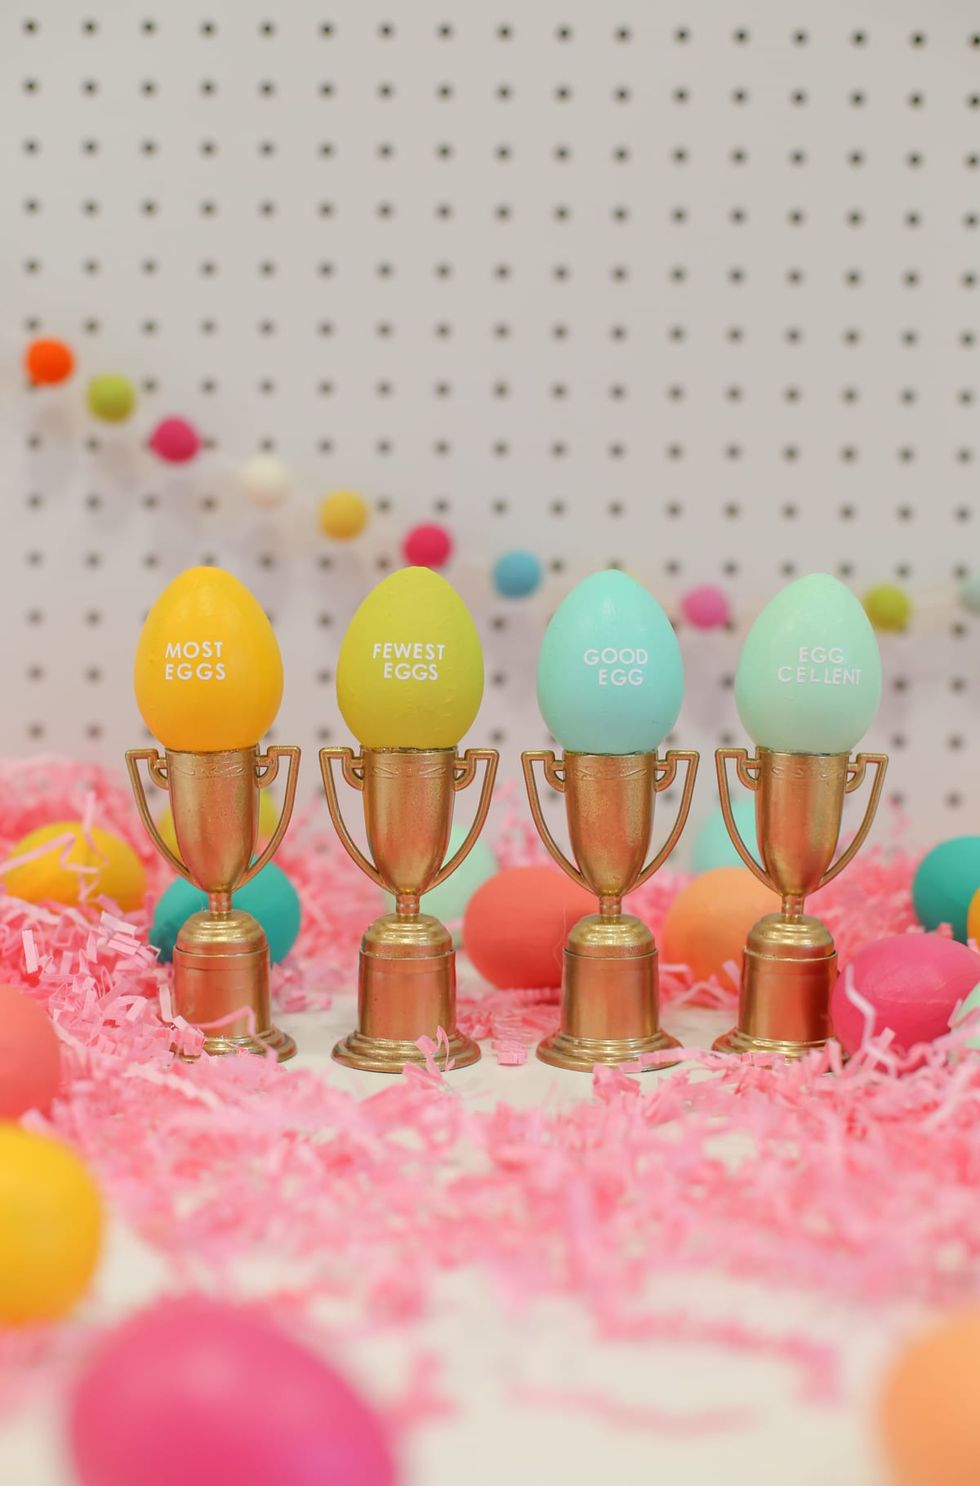 20 Easter Egg Hunt Ideas to Bring out Your Family's Competitive Side